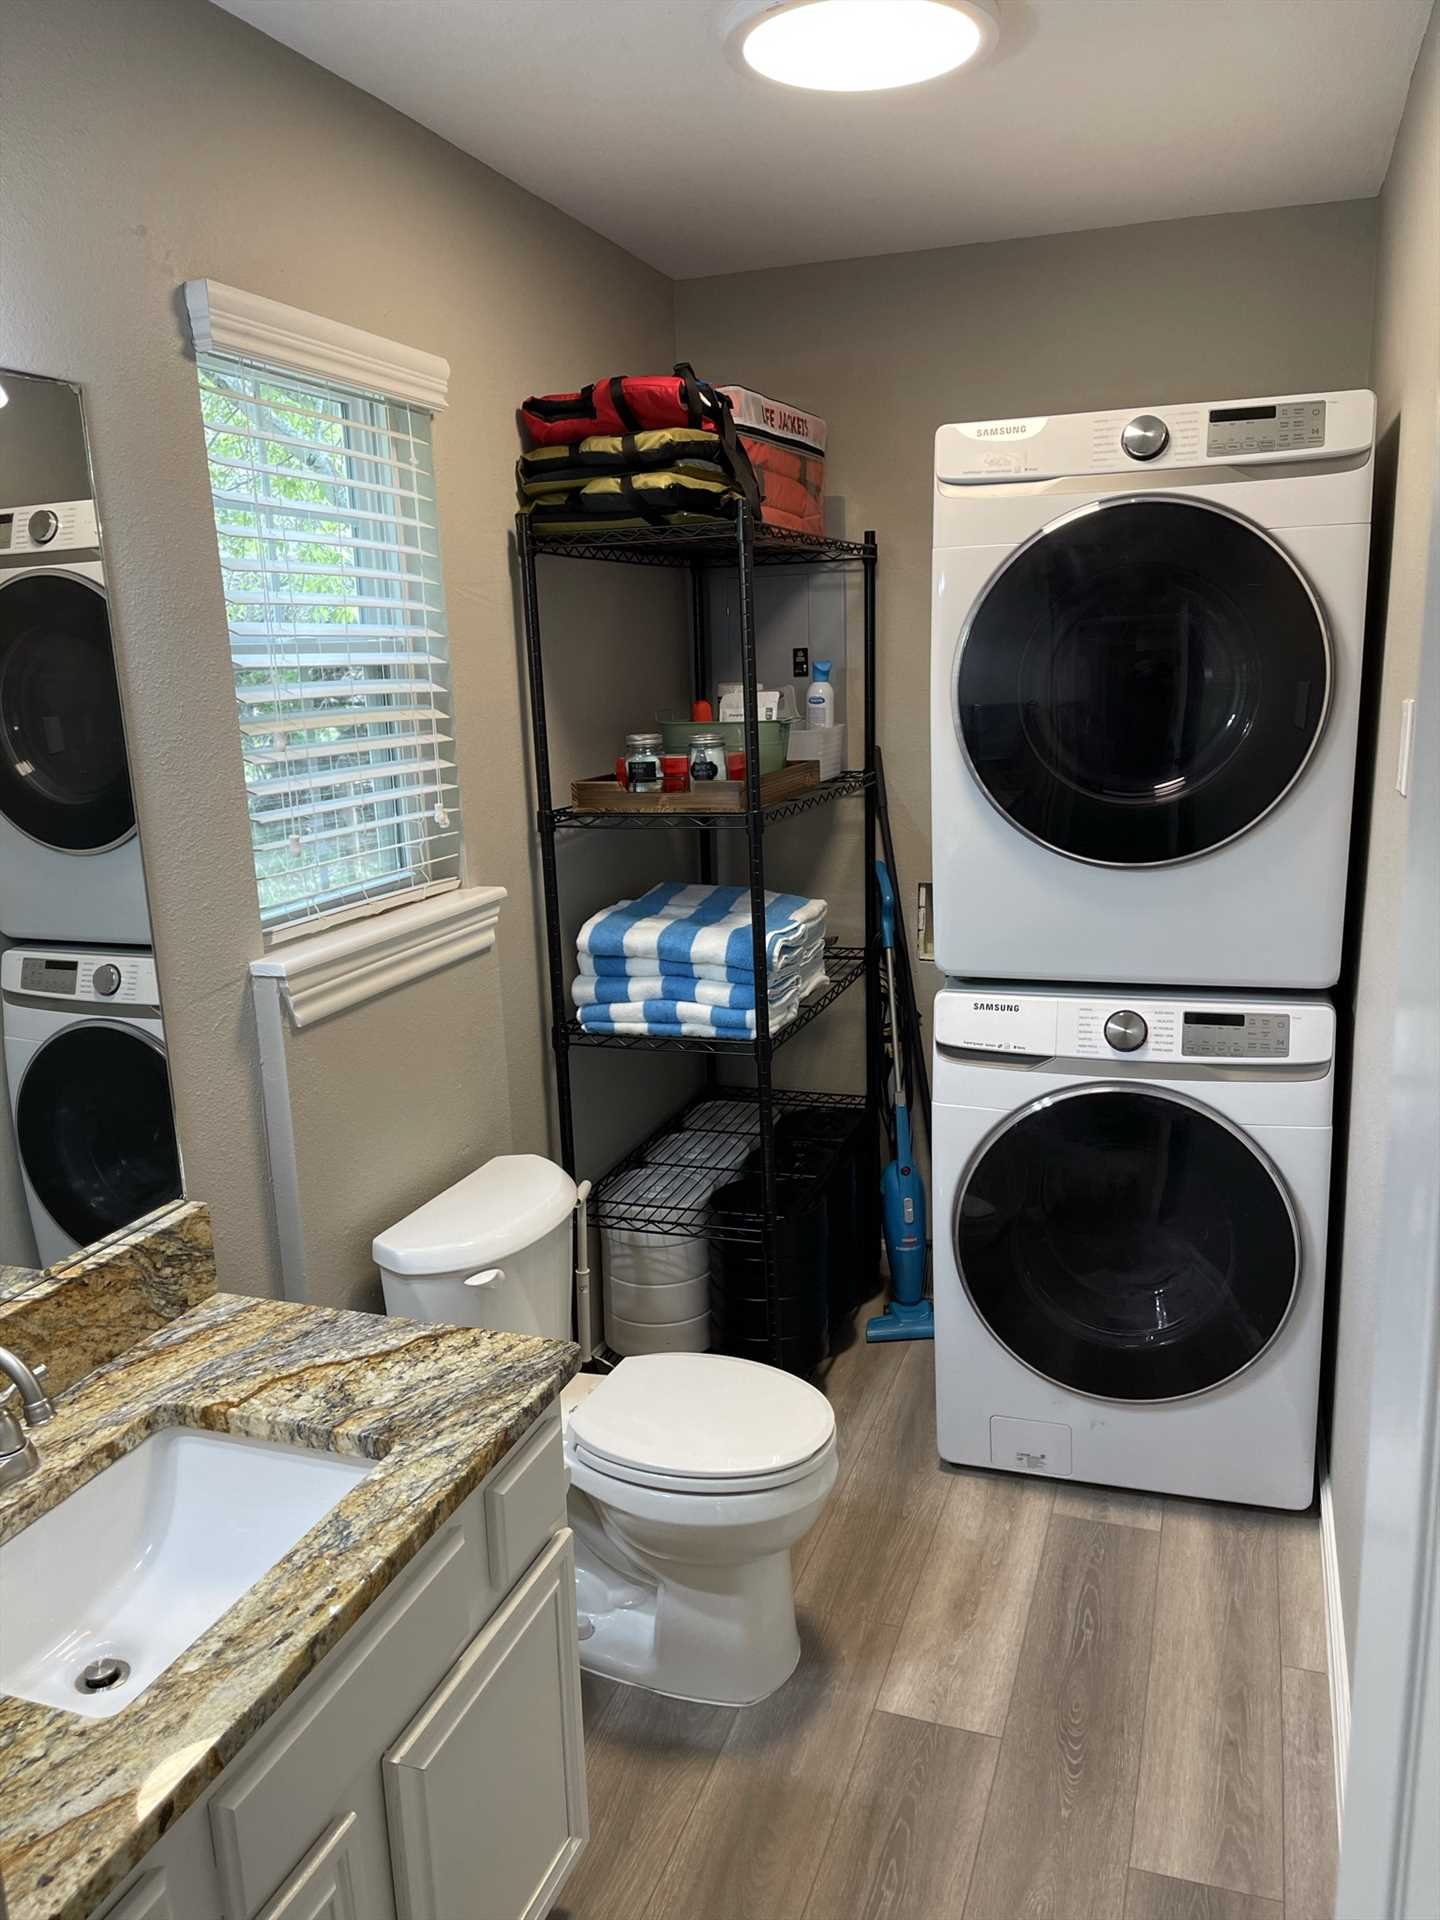 The tidy downstairs half-bath includes a washer and dryer for your convenience, too.